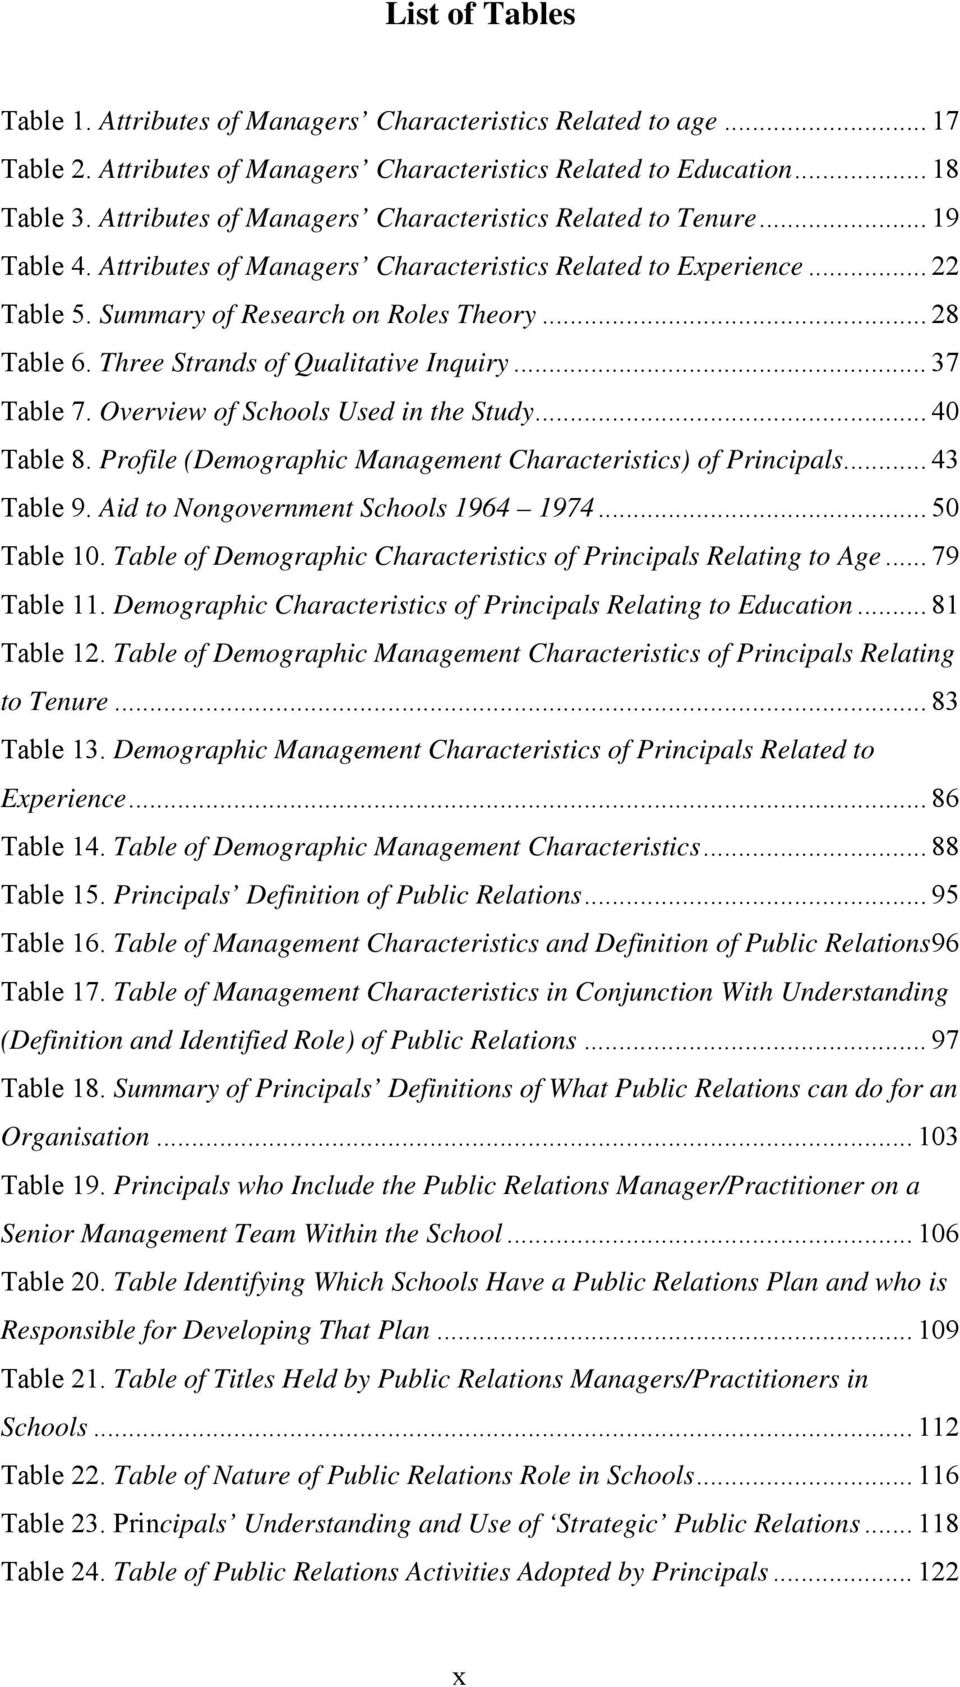 Three Strands of Qualitative Inquiry... 37 Table 7. Overview of Schools Used in the Study... 40 Table 8. Profile (Demographic Management Characteristics) of Principals... 43 Table 9.